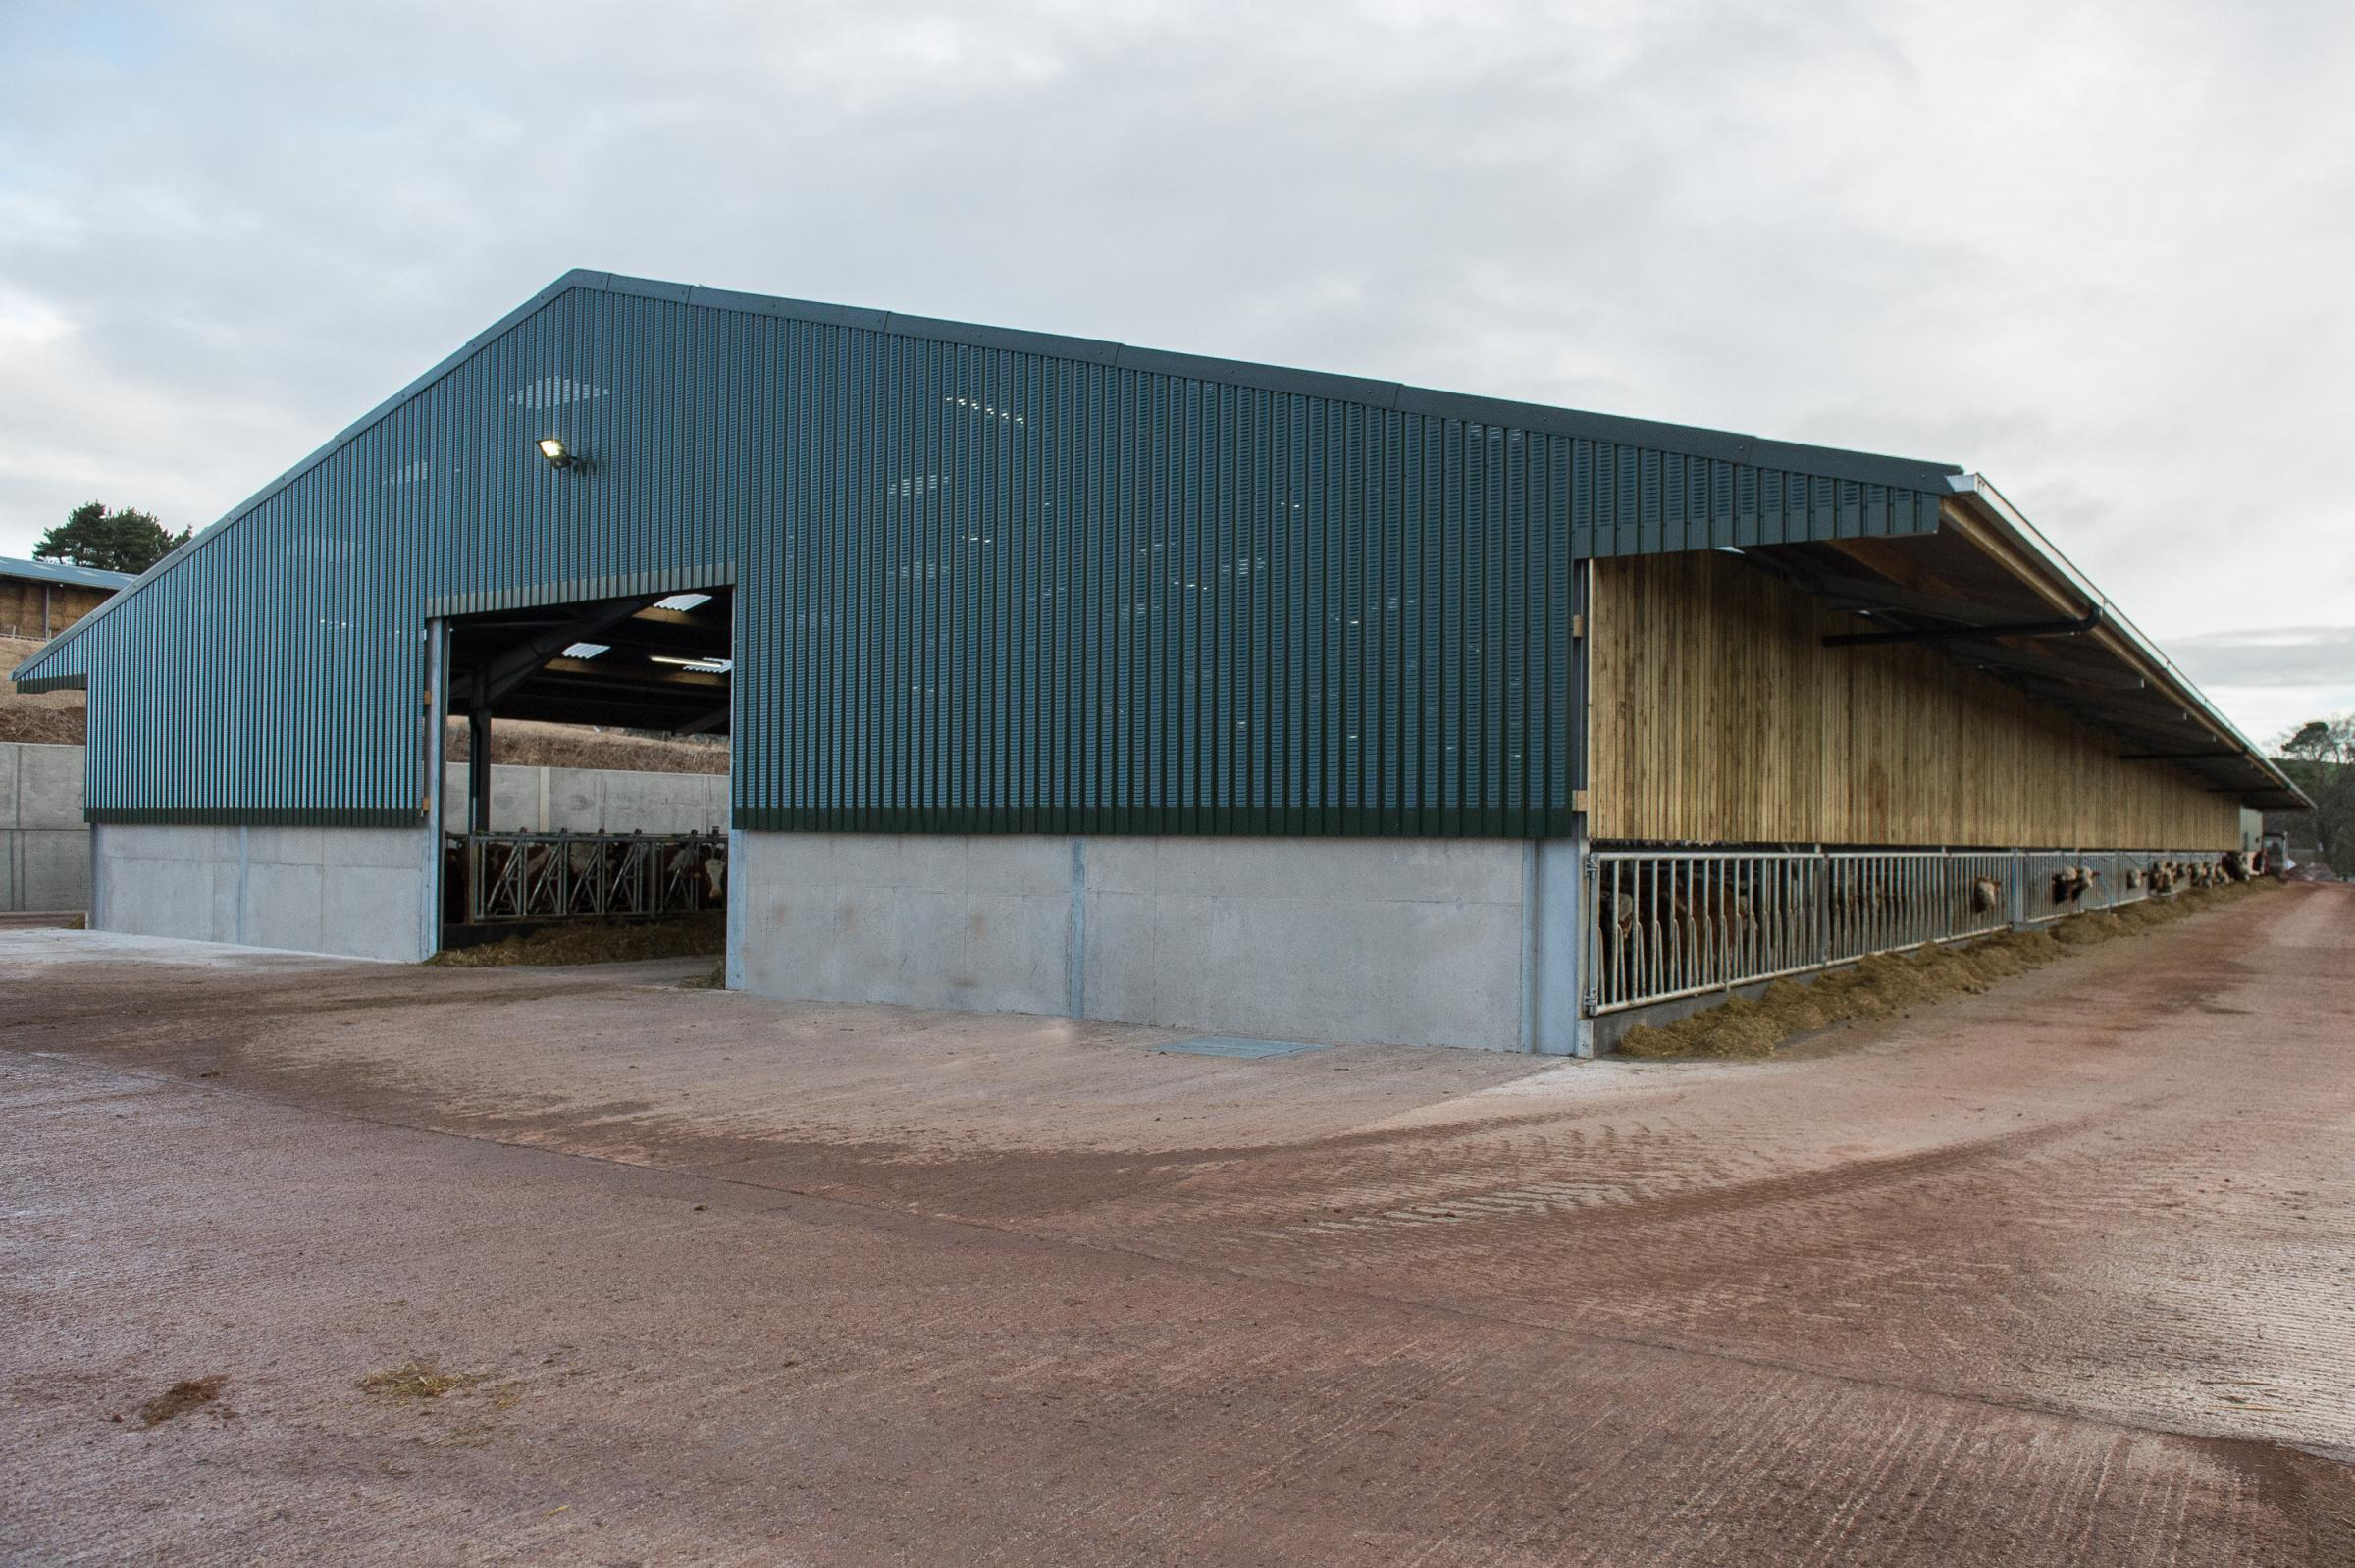 An exterior view of the new shed at Aikengall, spanning 300ft x 70ft